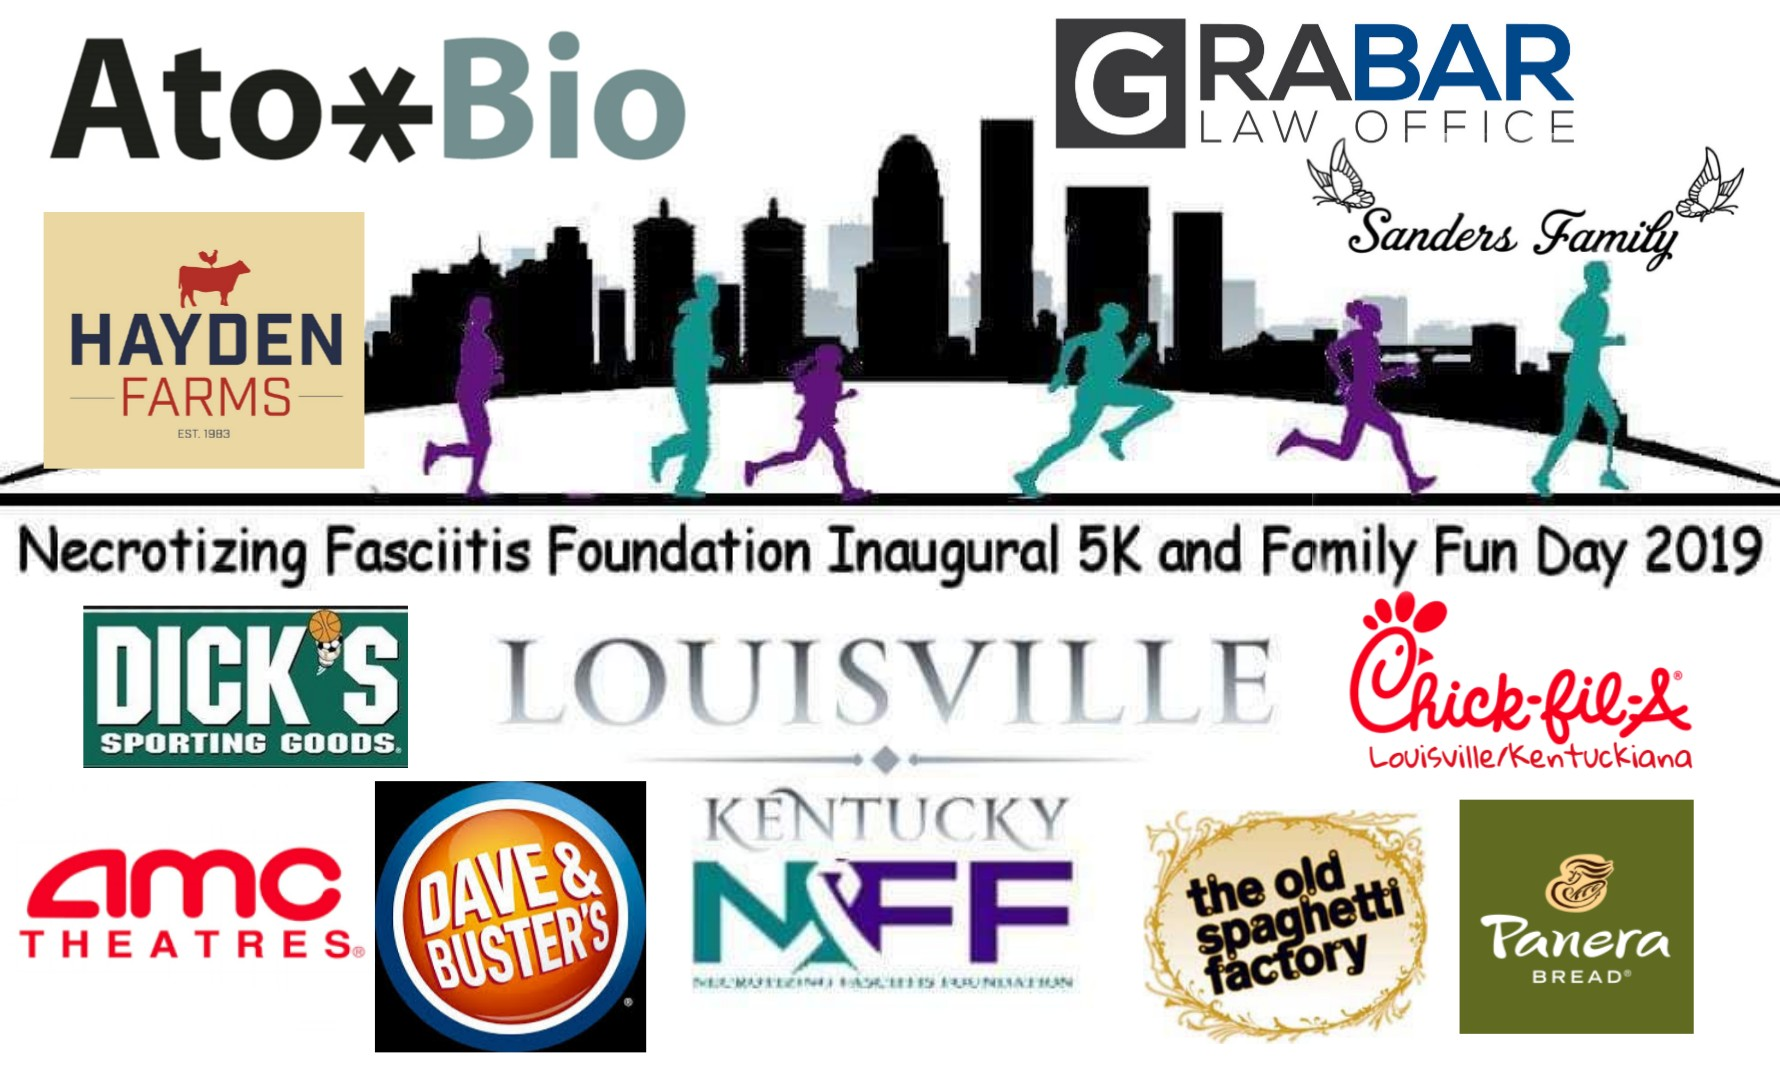 Thank you to all of our sponsors and product donors for helping to make our Inaugural Necrotizing Fasciitis Foundation 5k and Family Fun Day a success. We couldn't have done it without you!